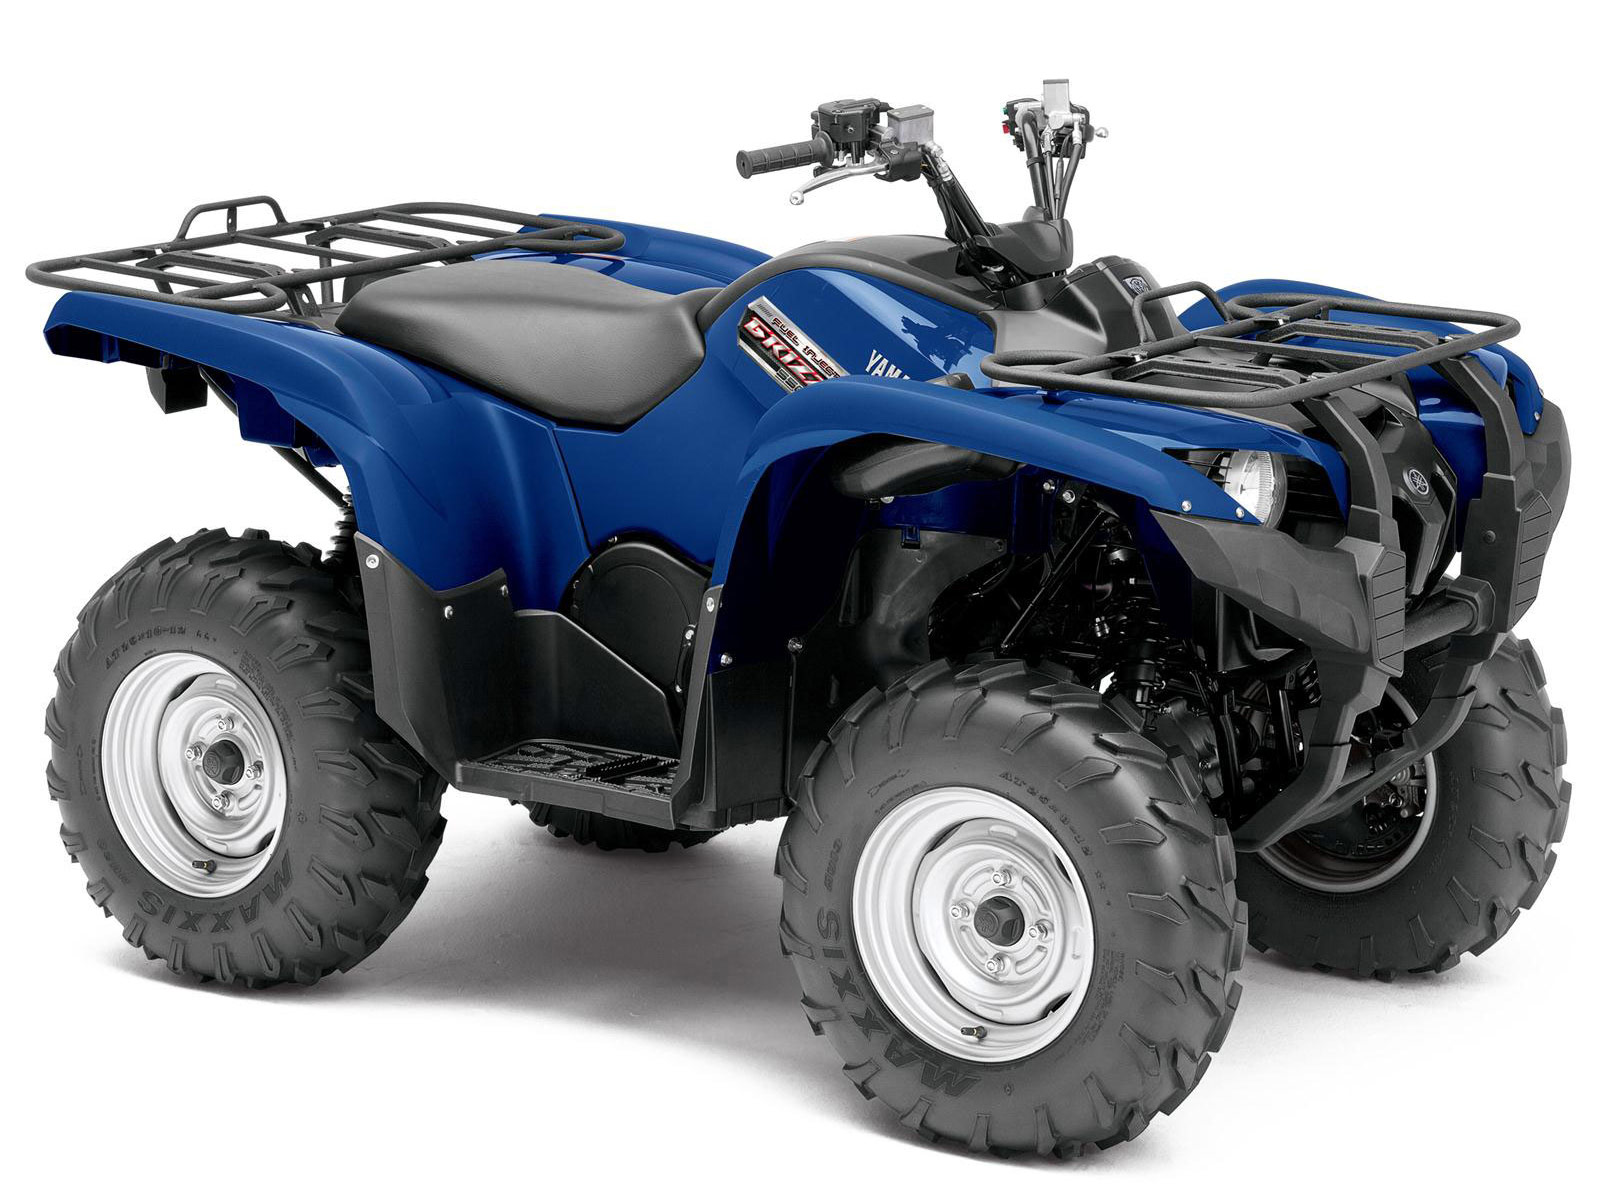 2013 grizzly 550 fi auto 4x4 yamaha atv pictures specs for Yamaha grizzly atv